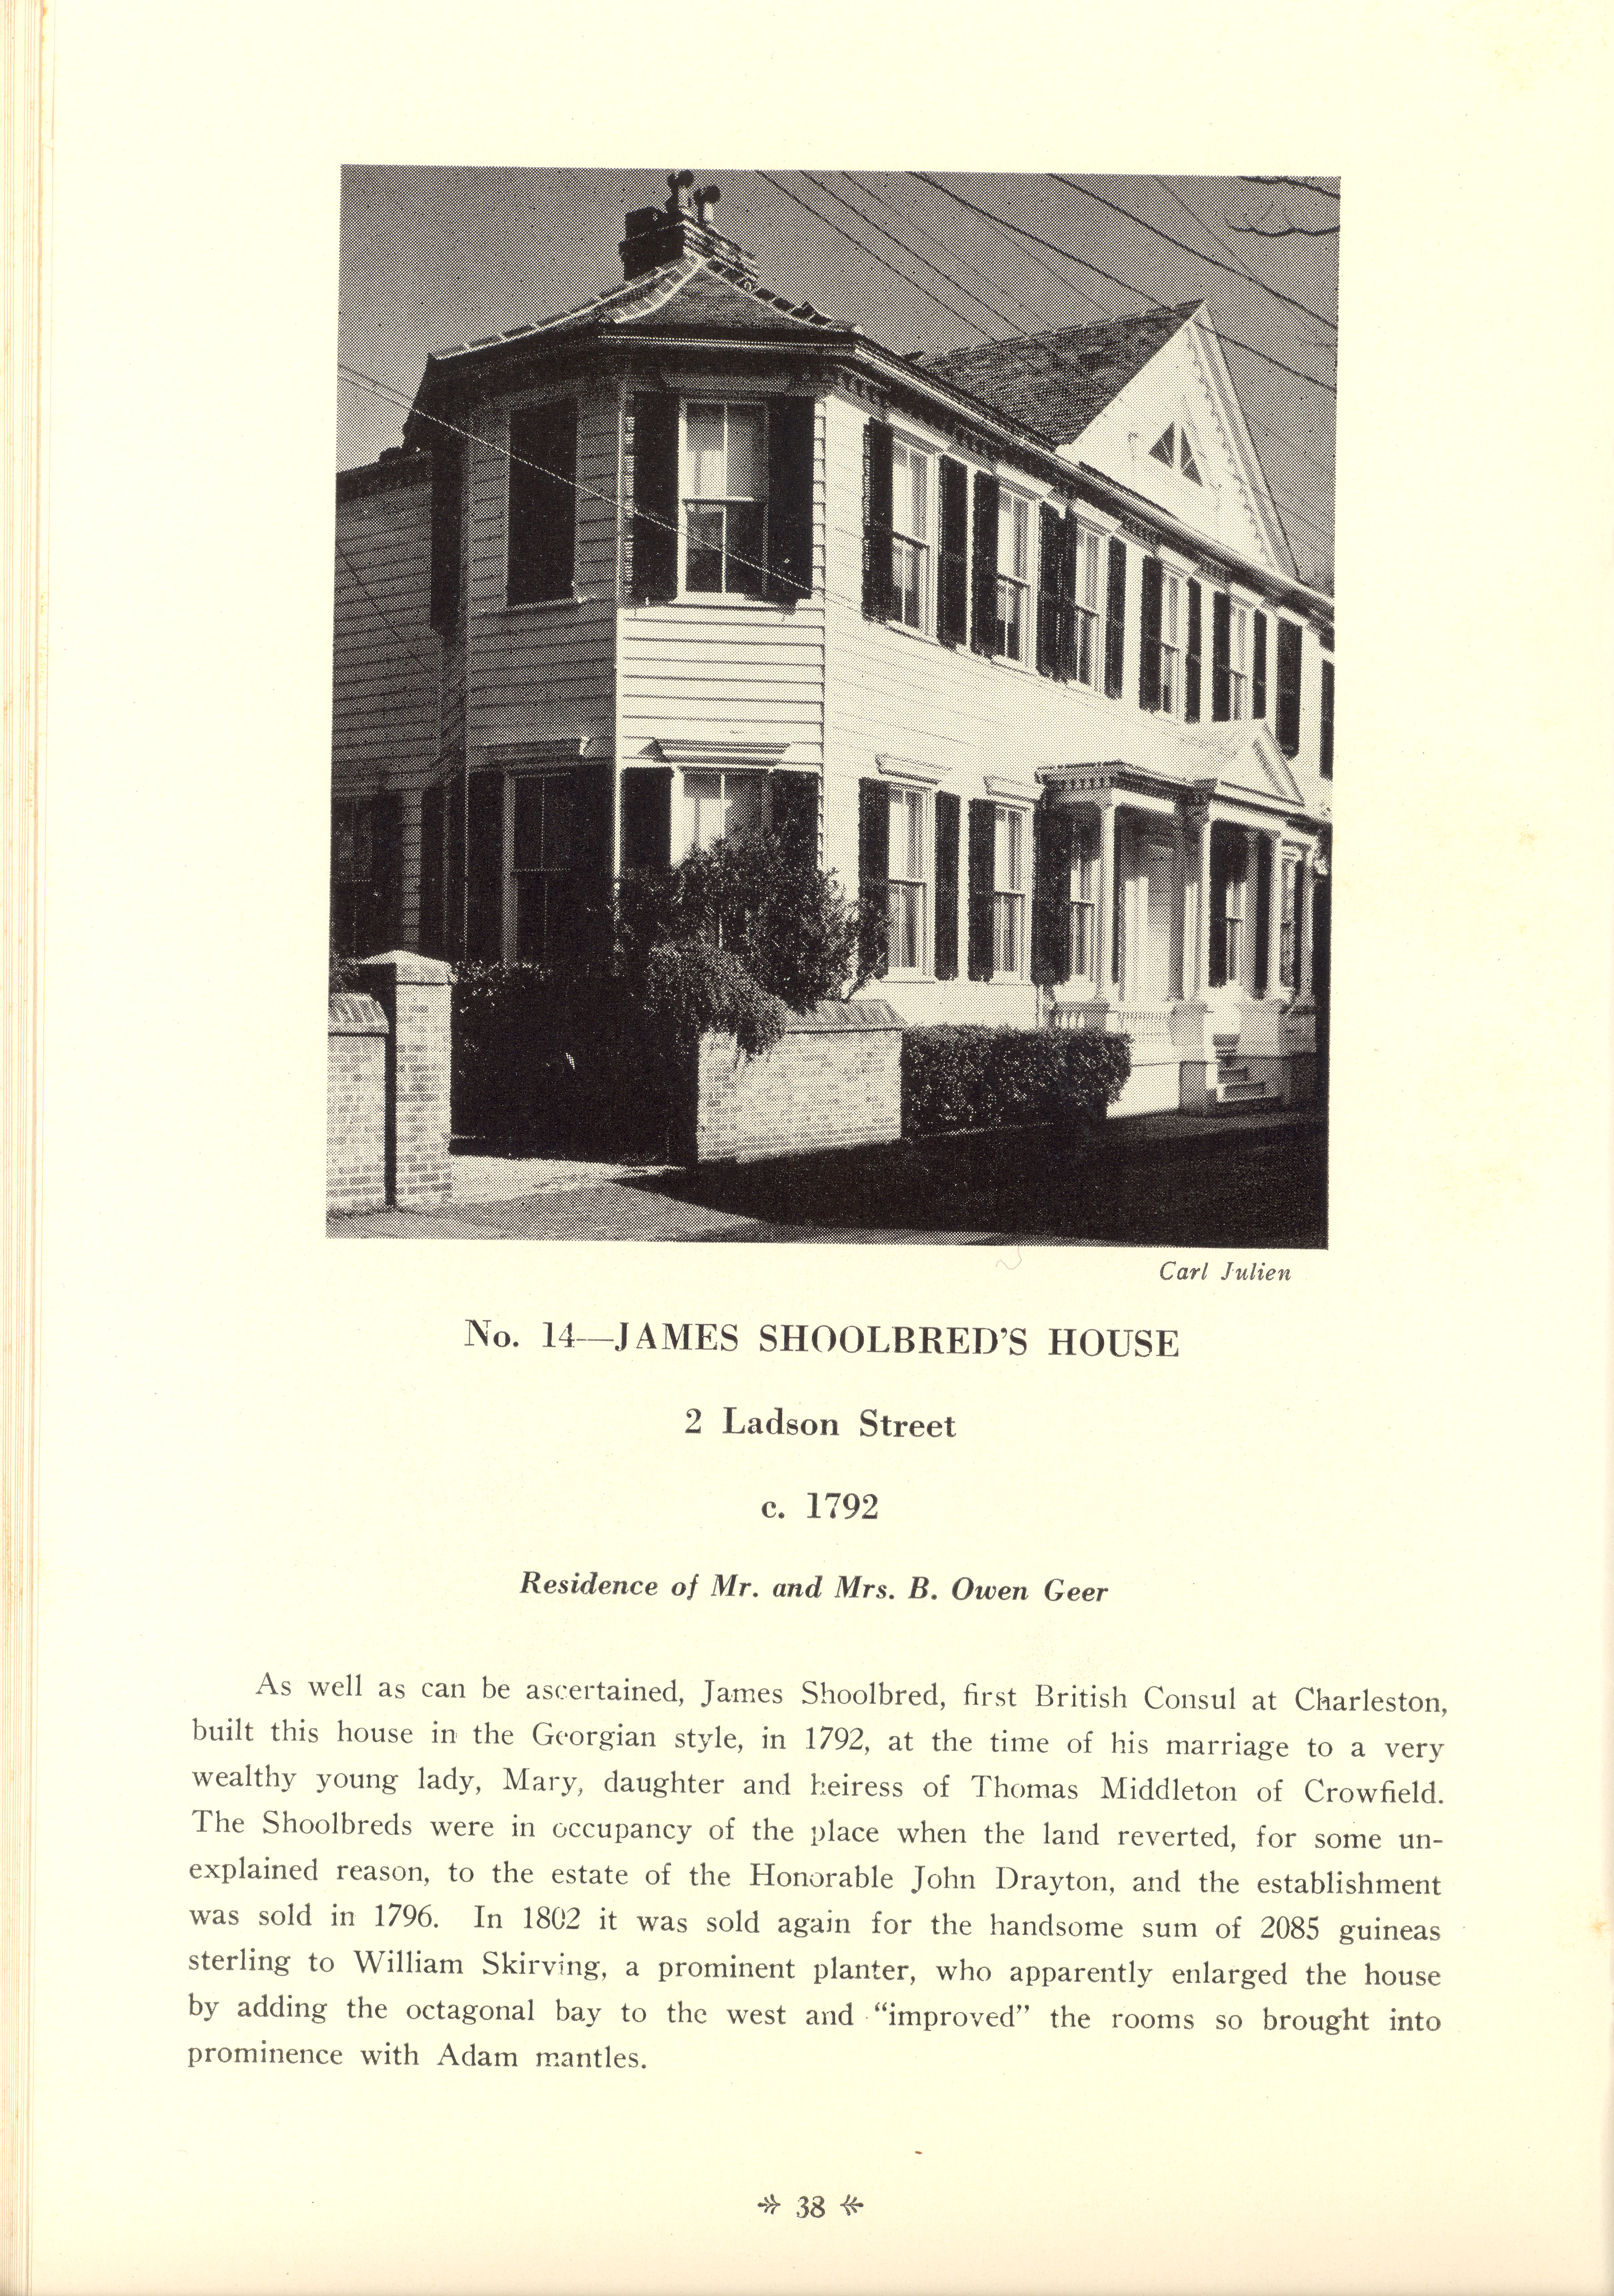 Page 38:  No. 14 - James Shoolbred's House, 2 Ladson Street, c. 1792